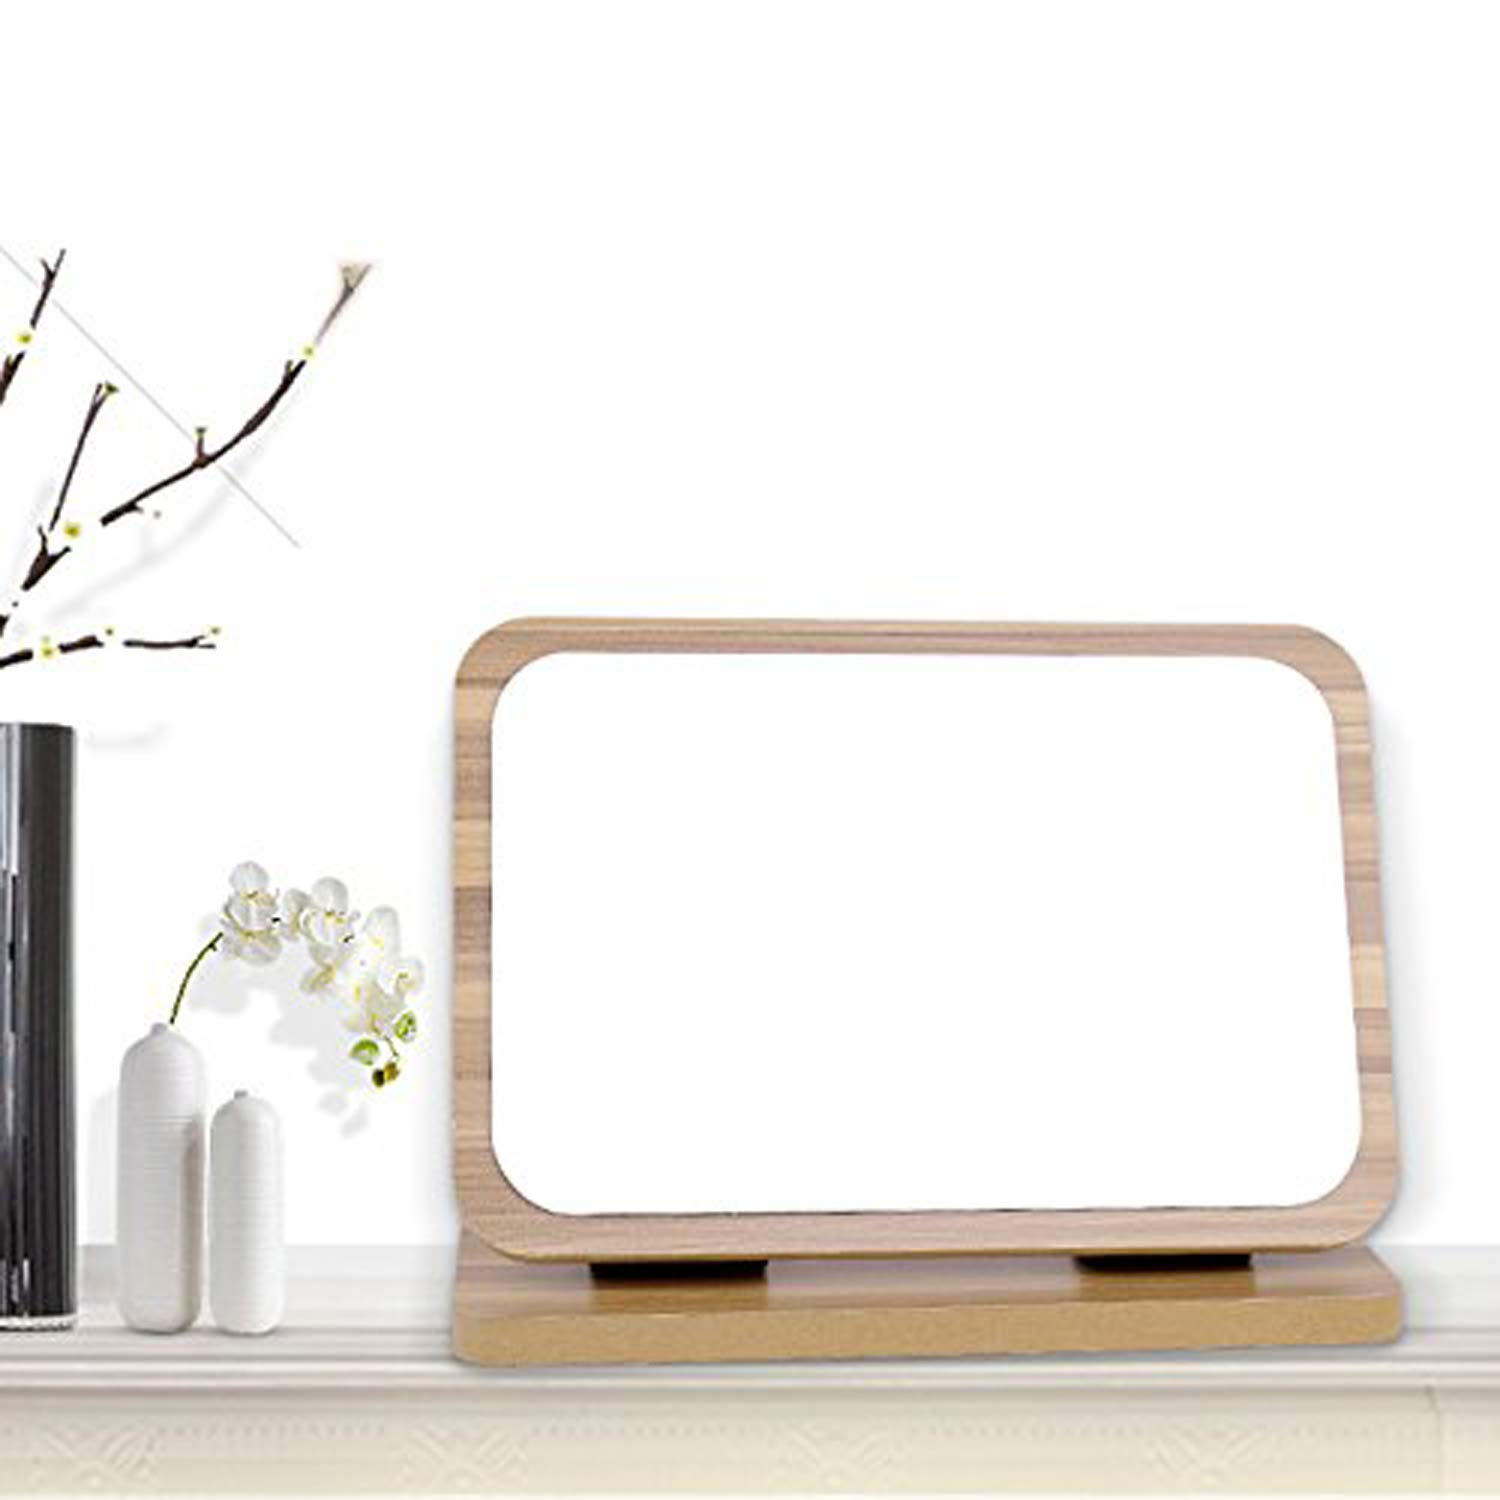 GOHIDE High Definition Cosmetic Mirror Wooden HD Makeup Mirror Simple Beauty Mirror Dressing Folding Simple Portable Large Desktop by GOHIDE (Image #6)